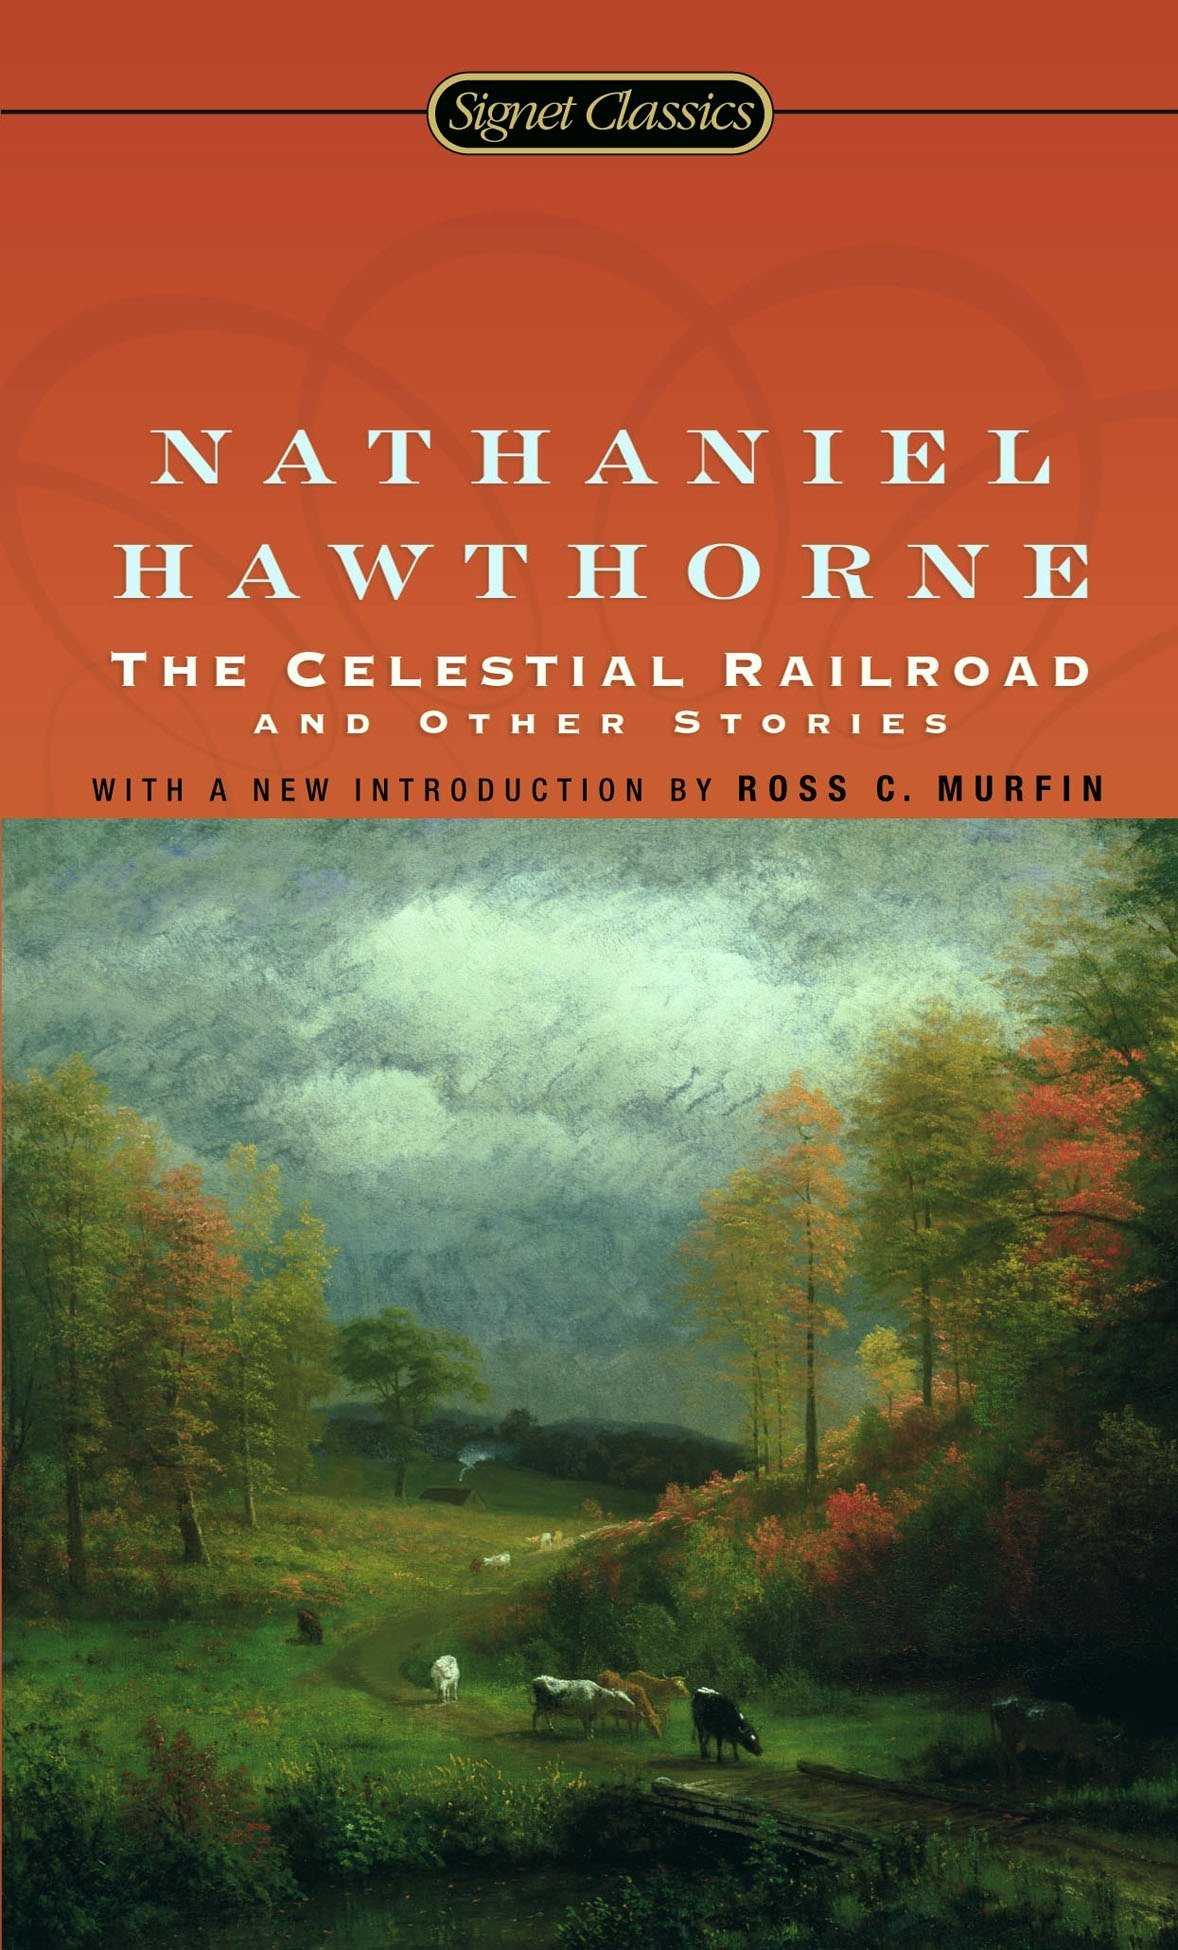 Publication: The Celestial Railroad and Other Stories